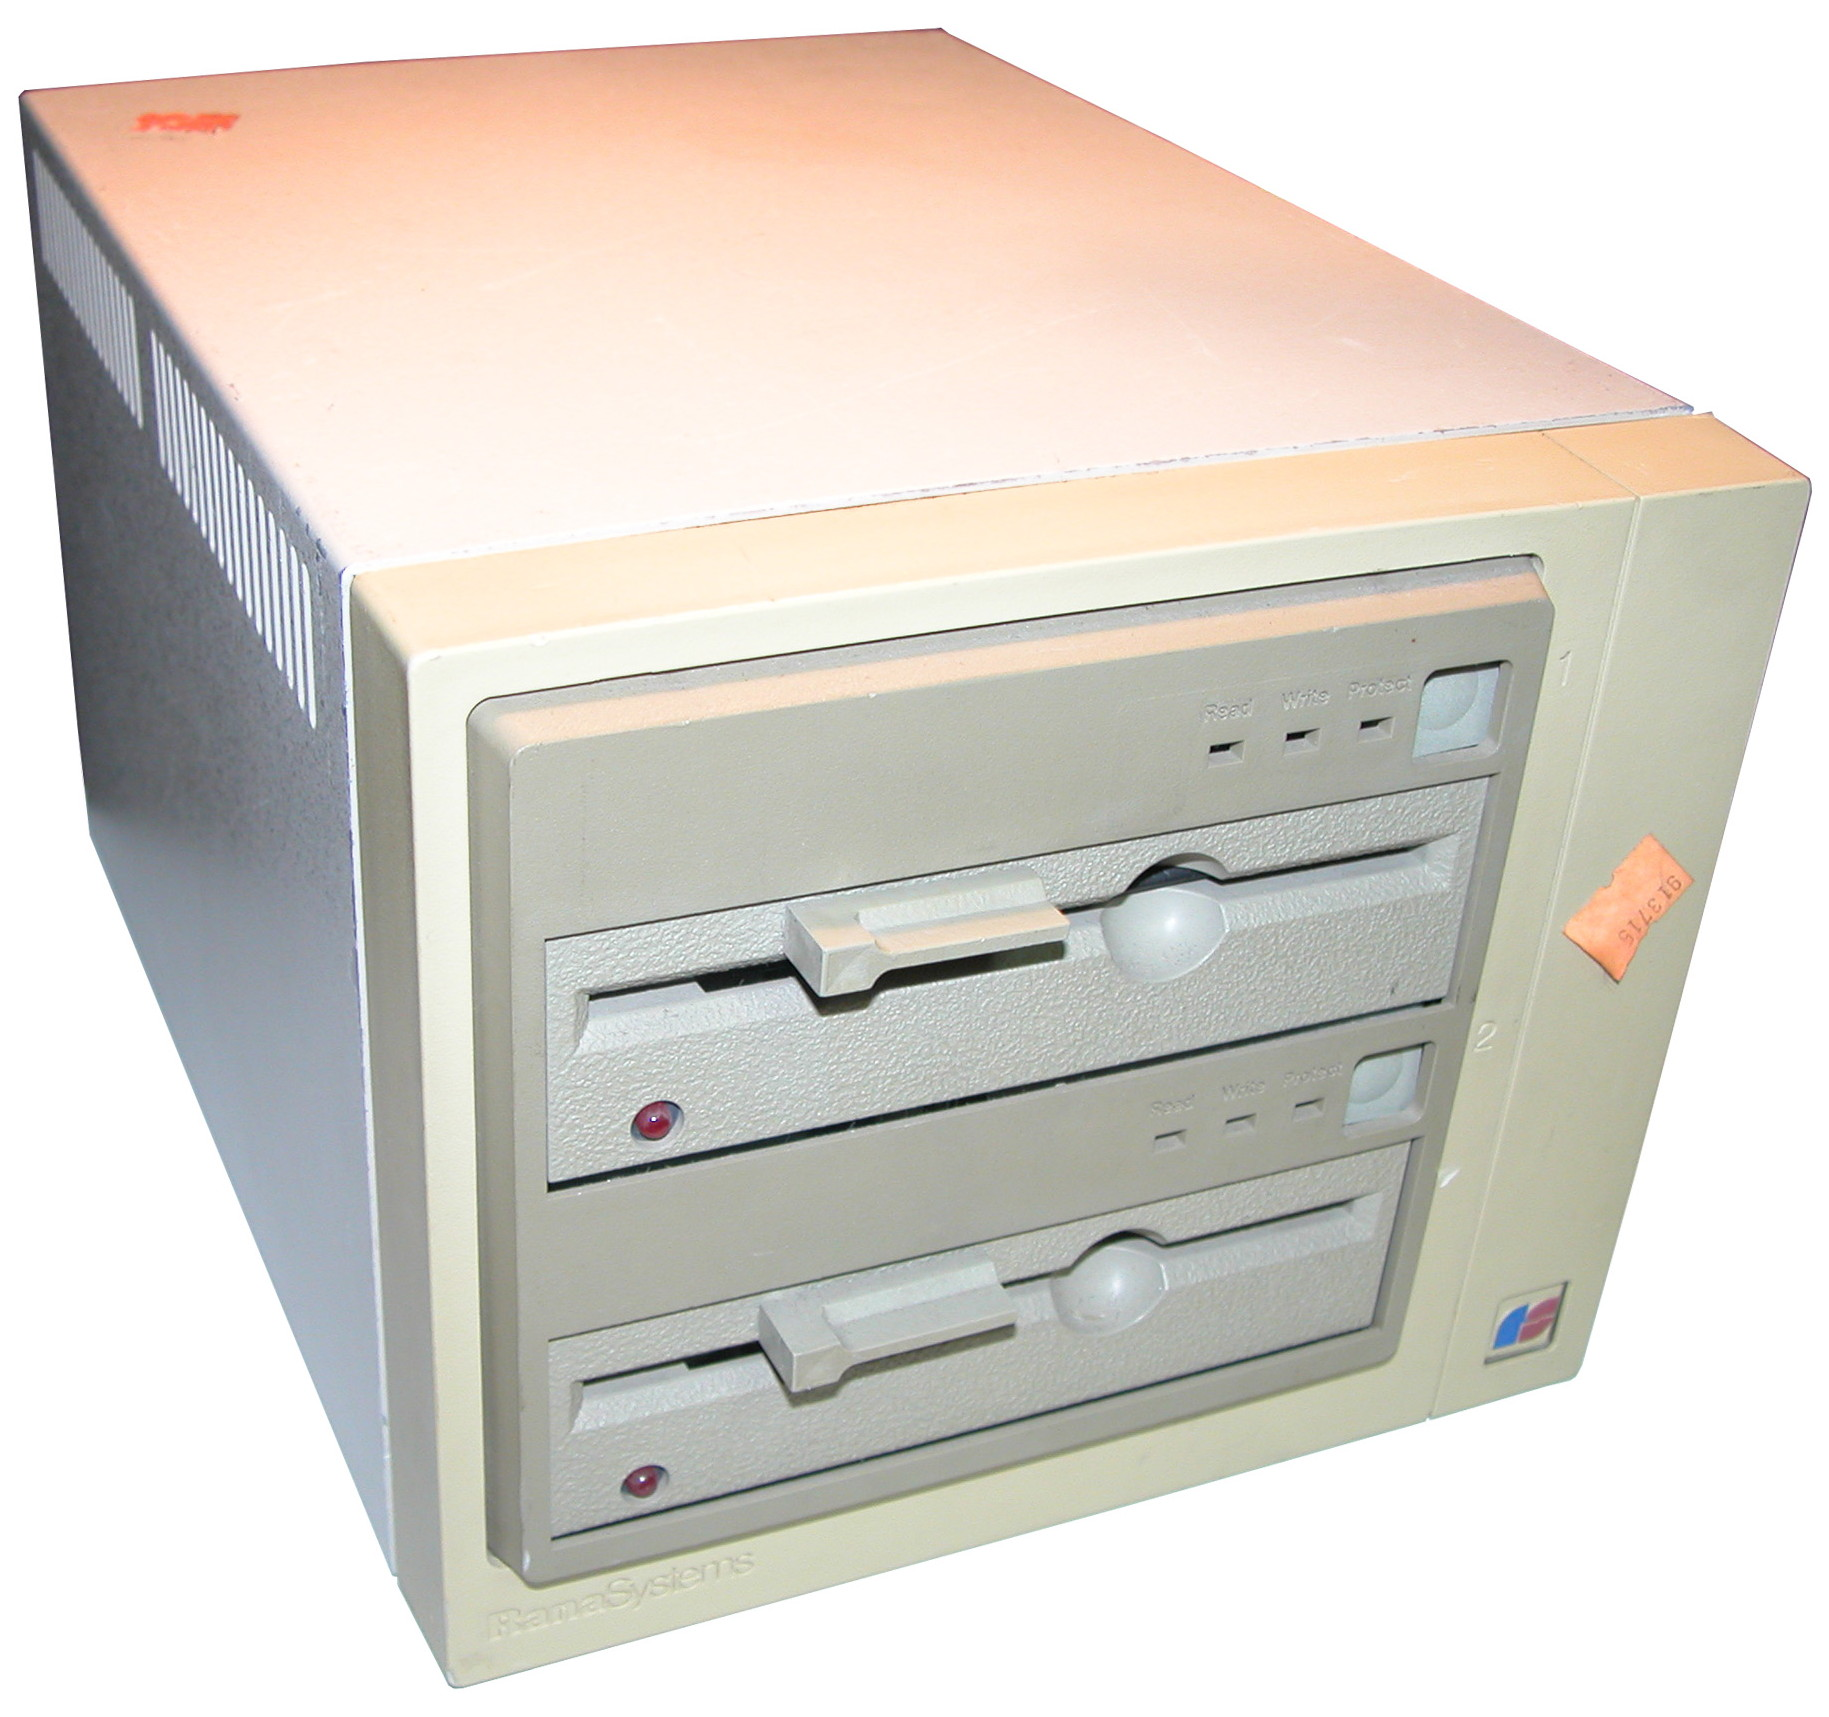 Rana Systems disk drives